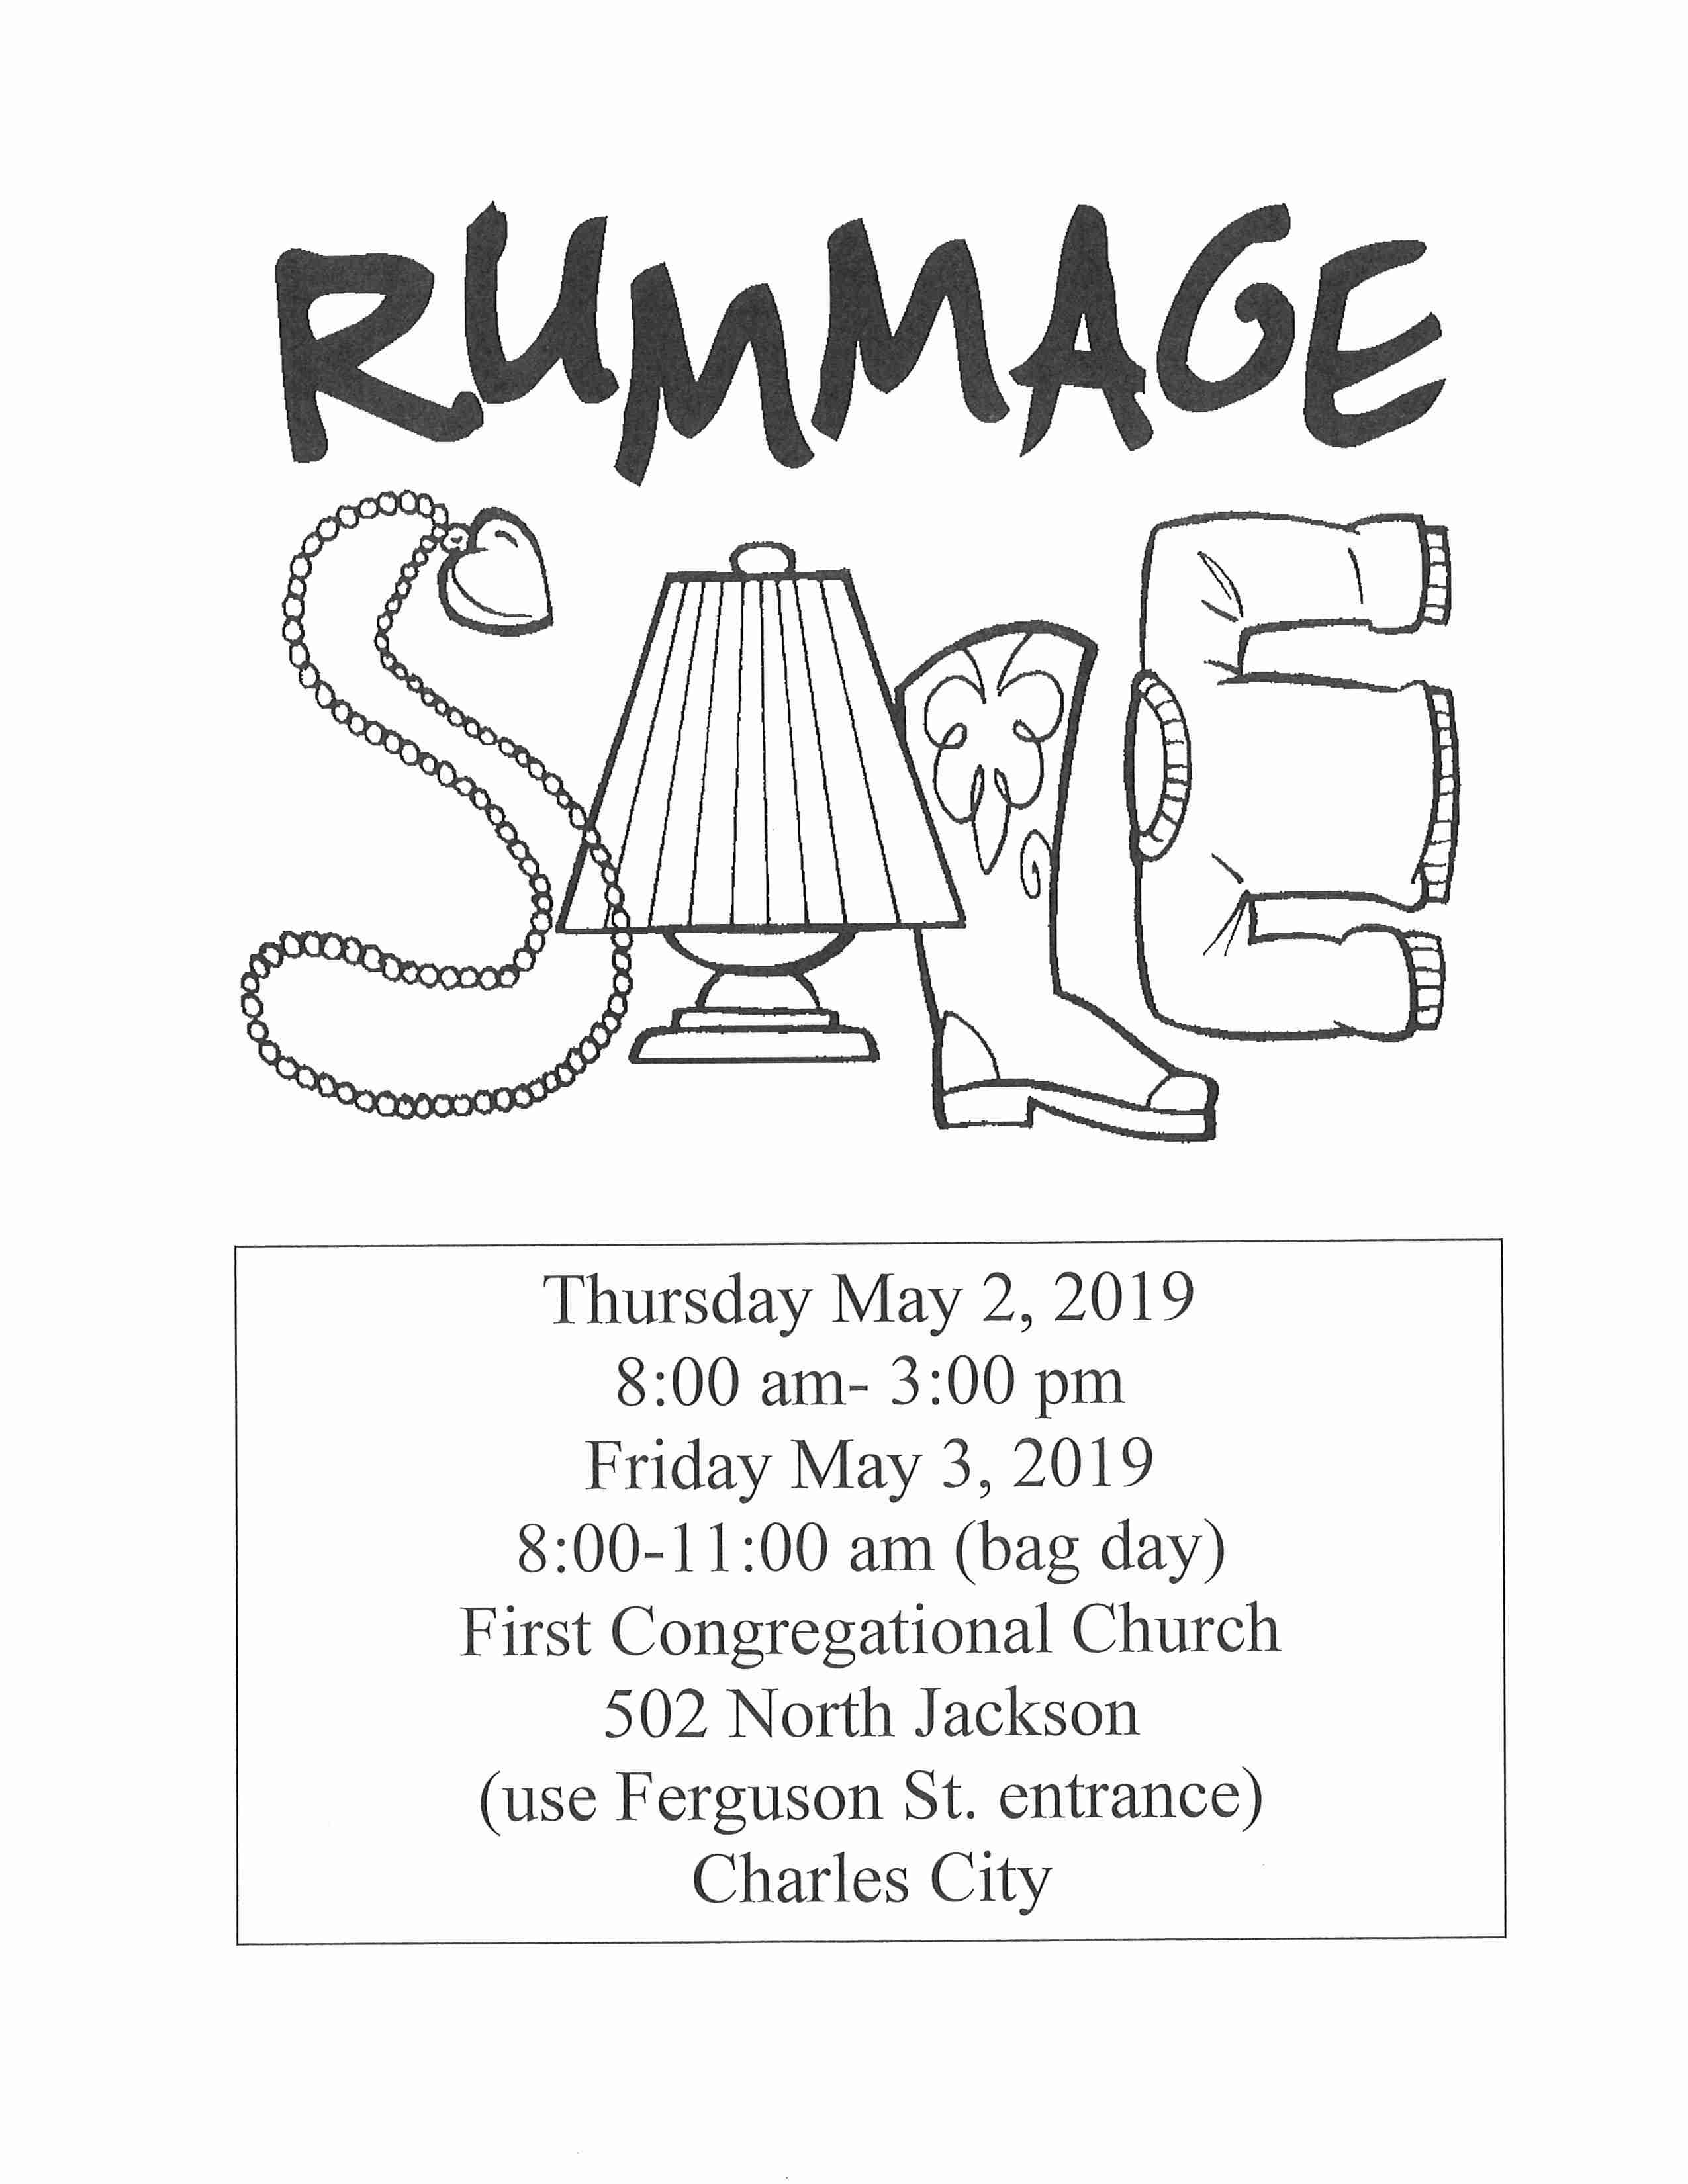 Rummage Sale at First Congregational Church, Charles City – 95 1 The